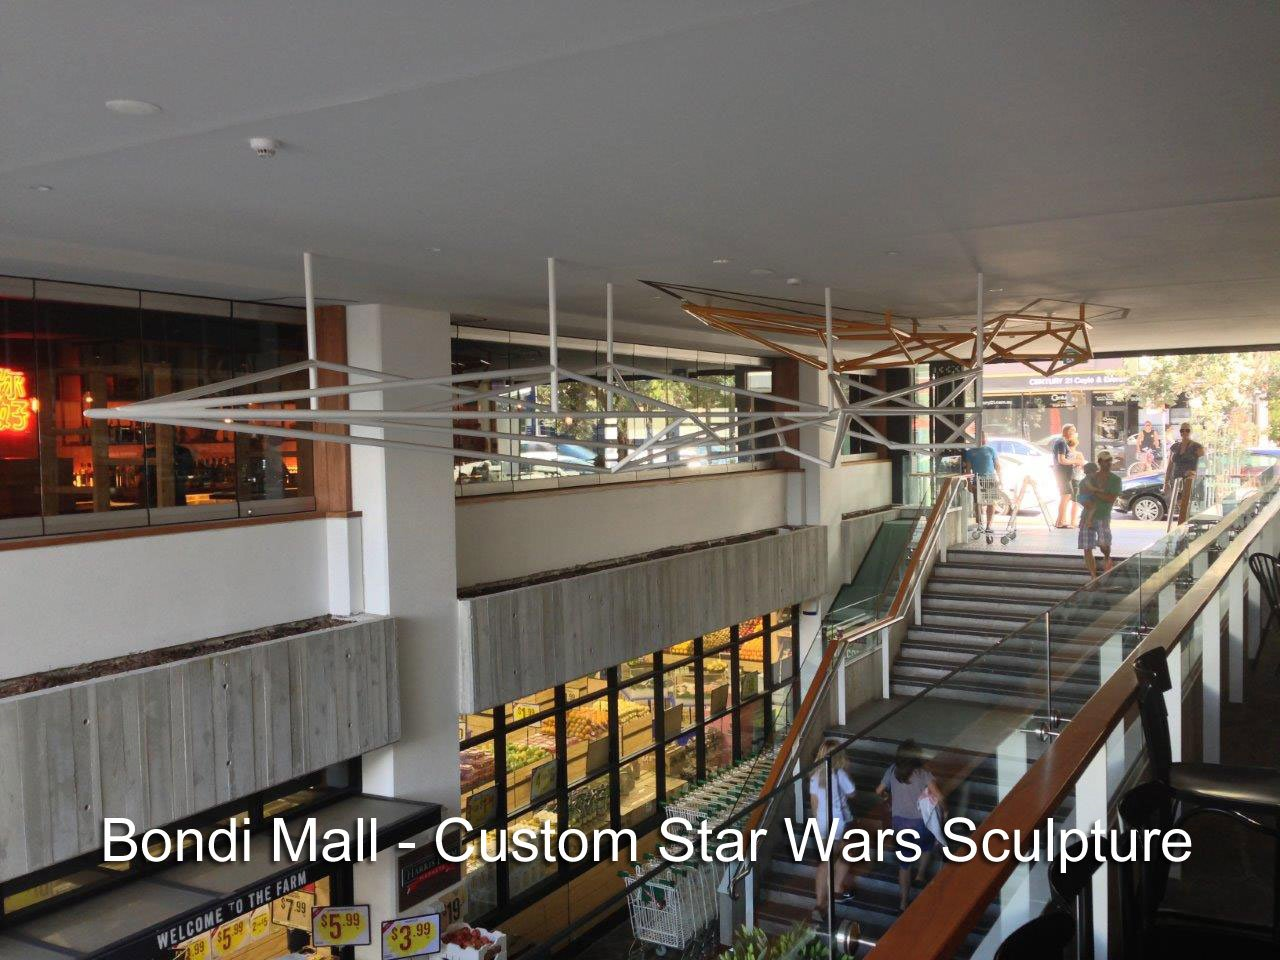 bondi-mall-custom-star-wars-sculpture-1